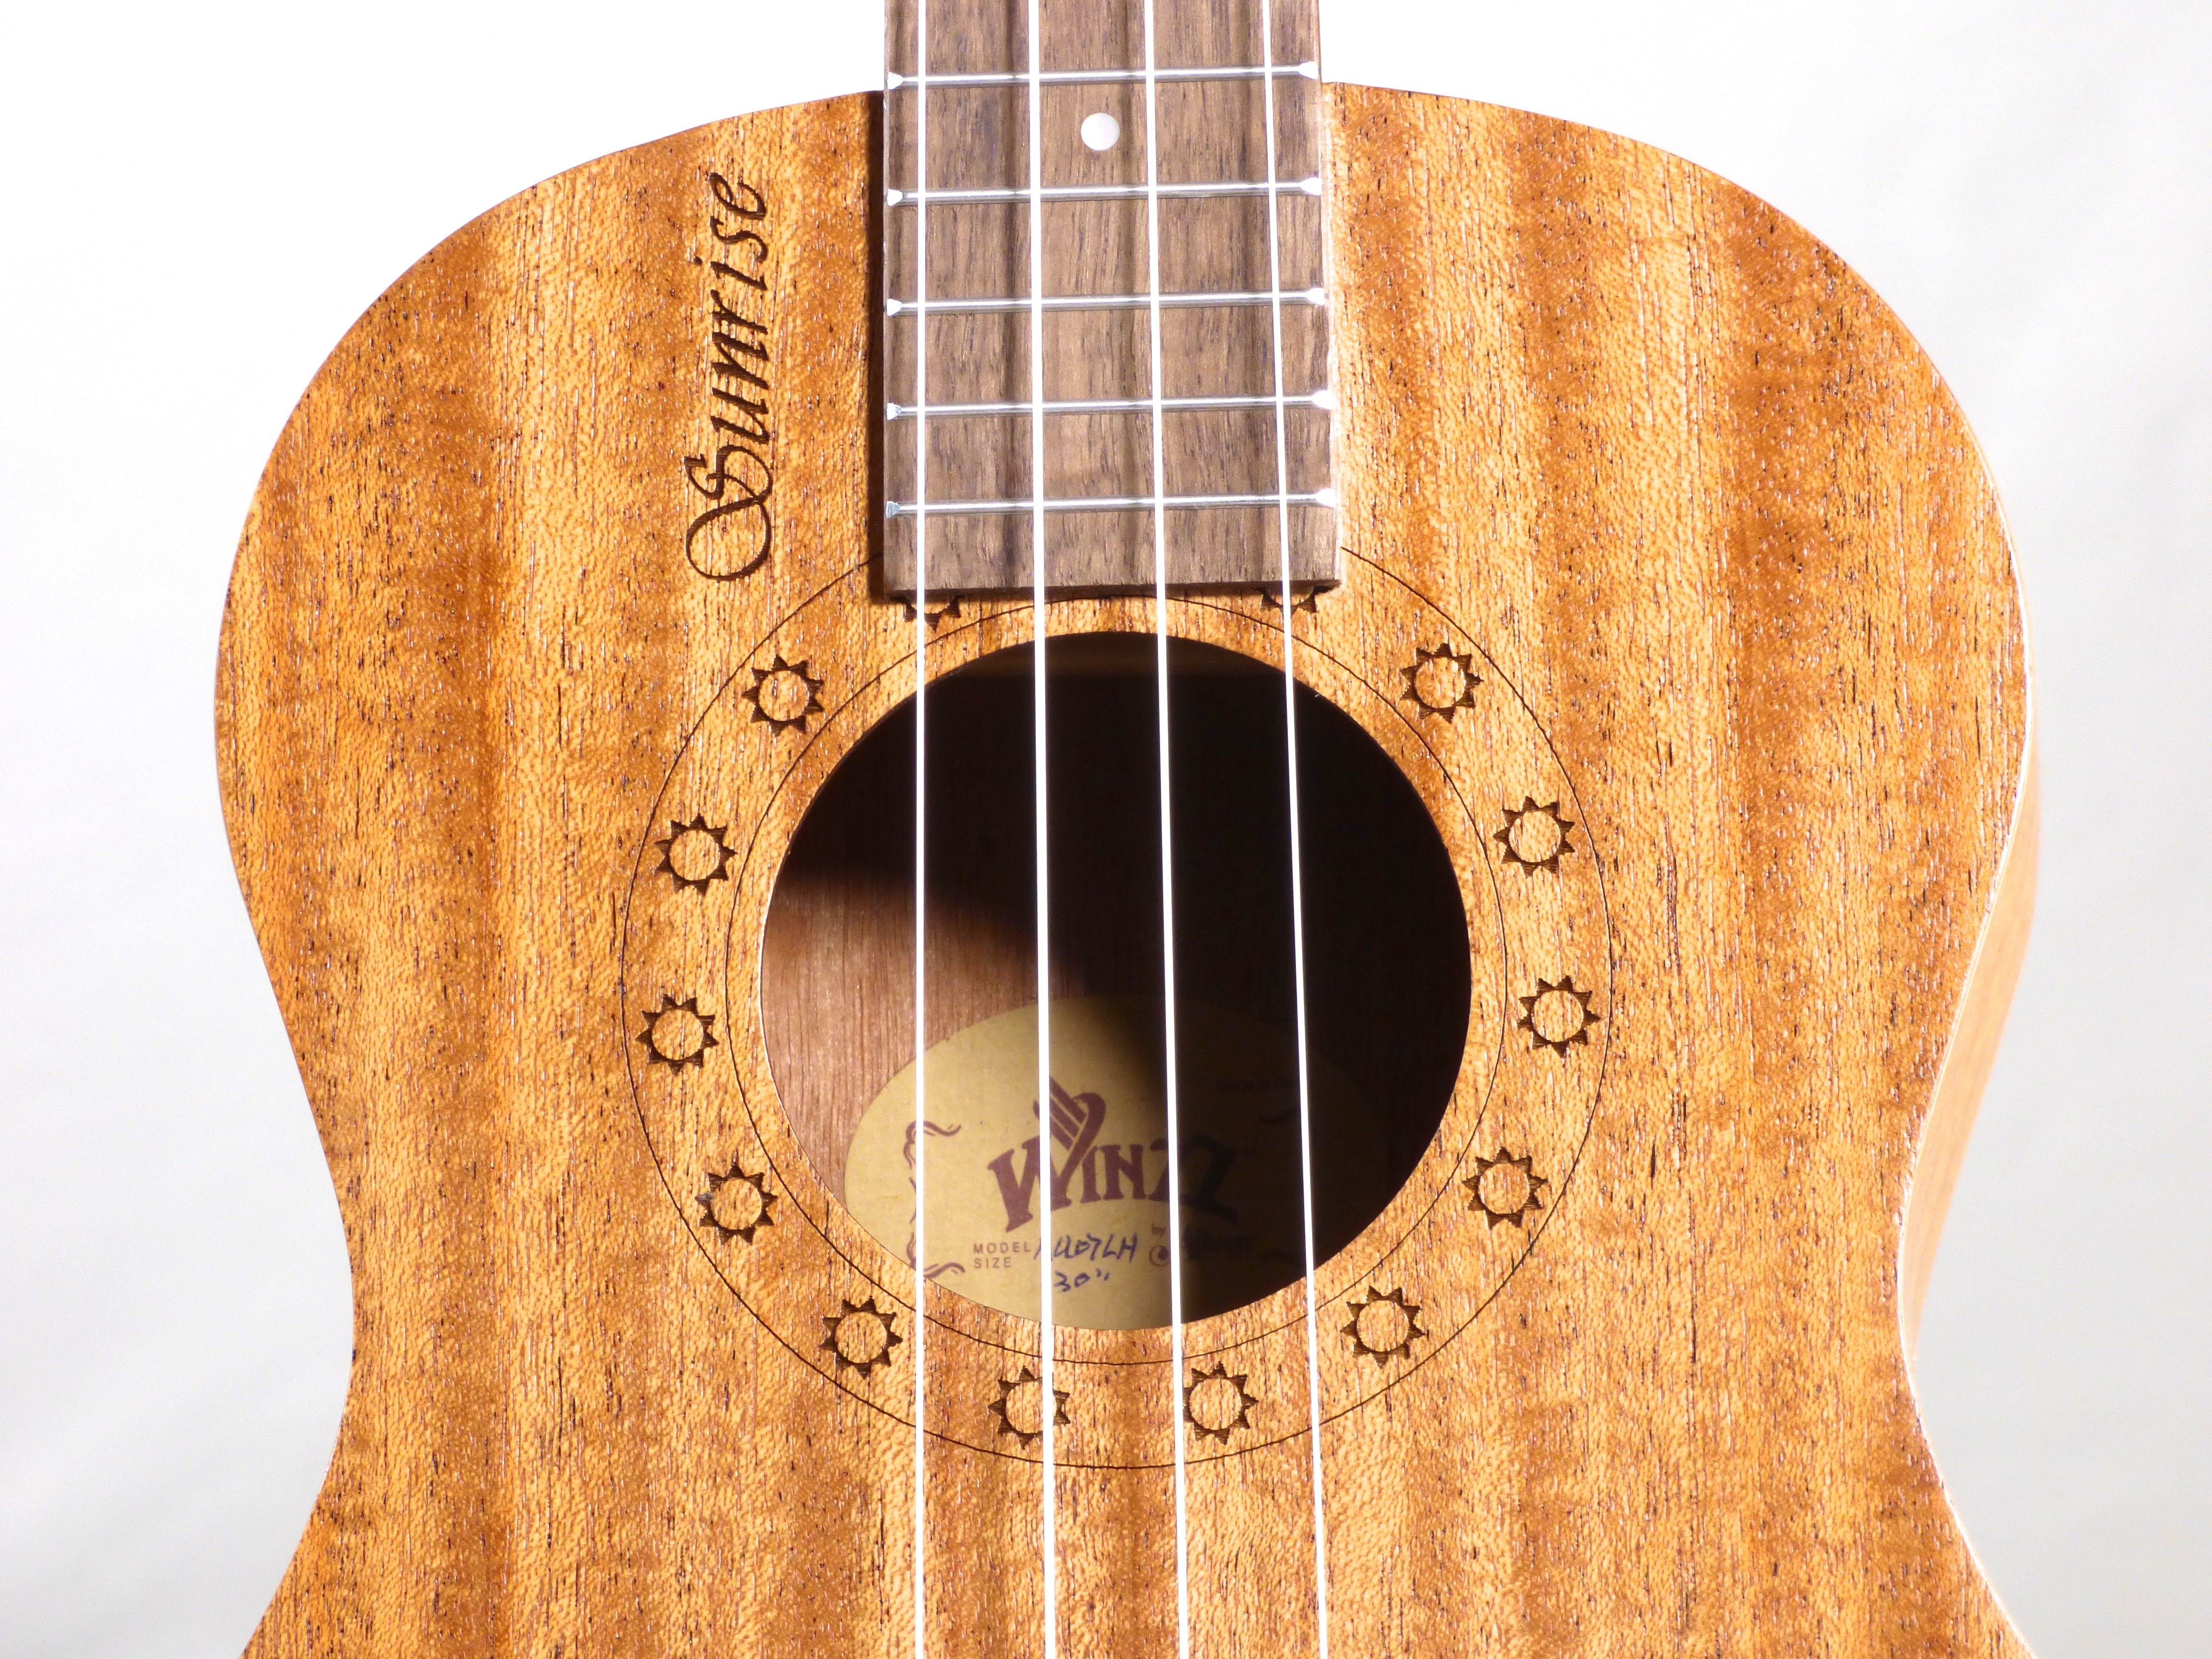 Sunrise Series Ukuleles - Available in Soprano, Concert,  and Tenor Sizes